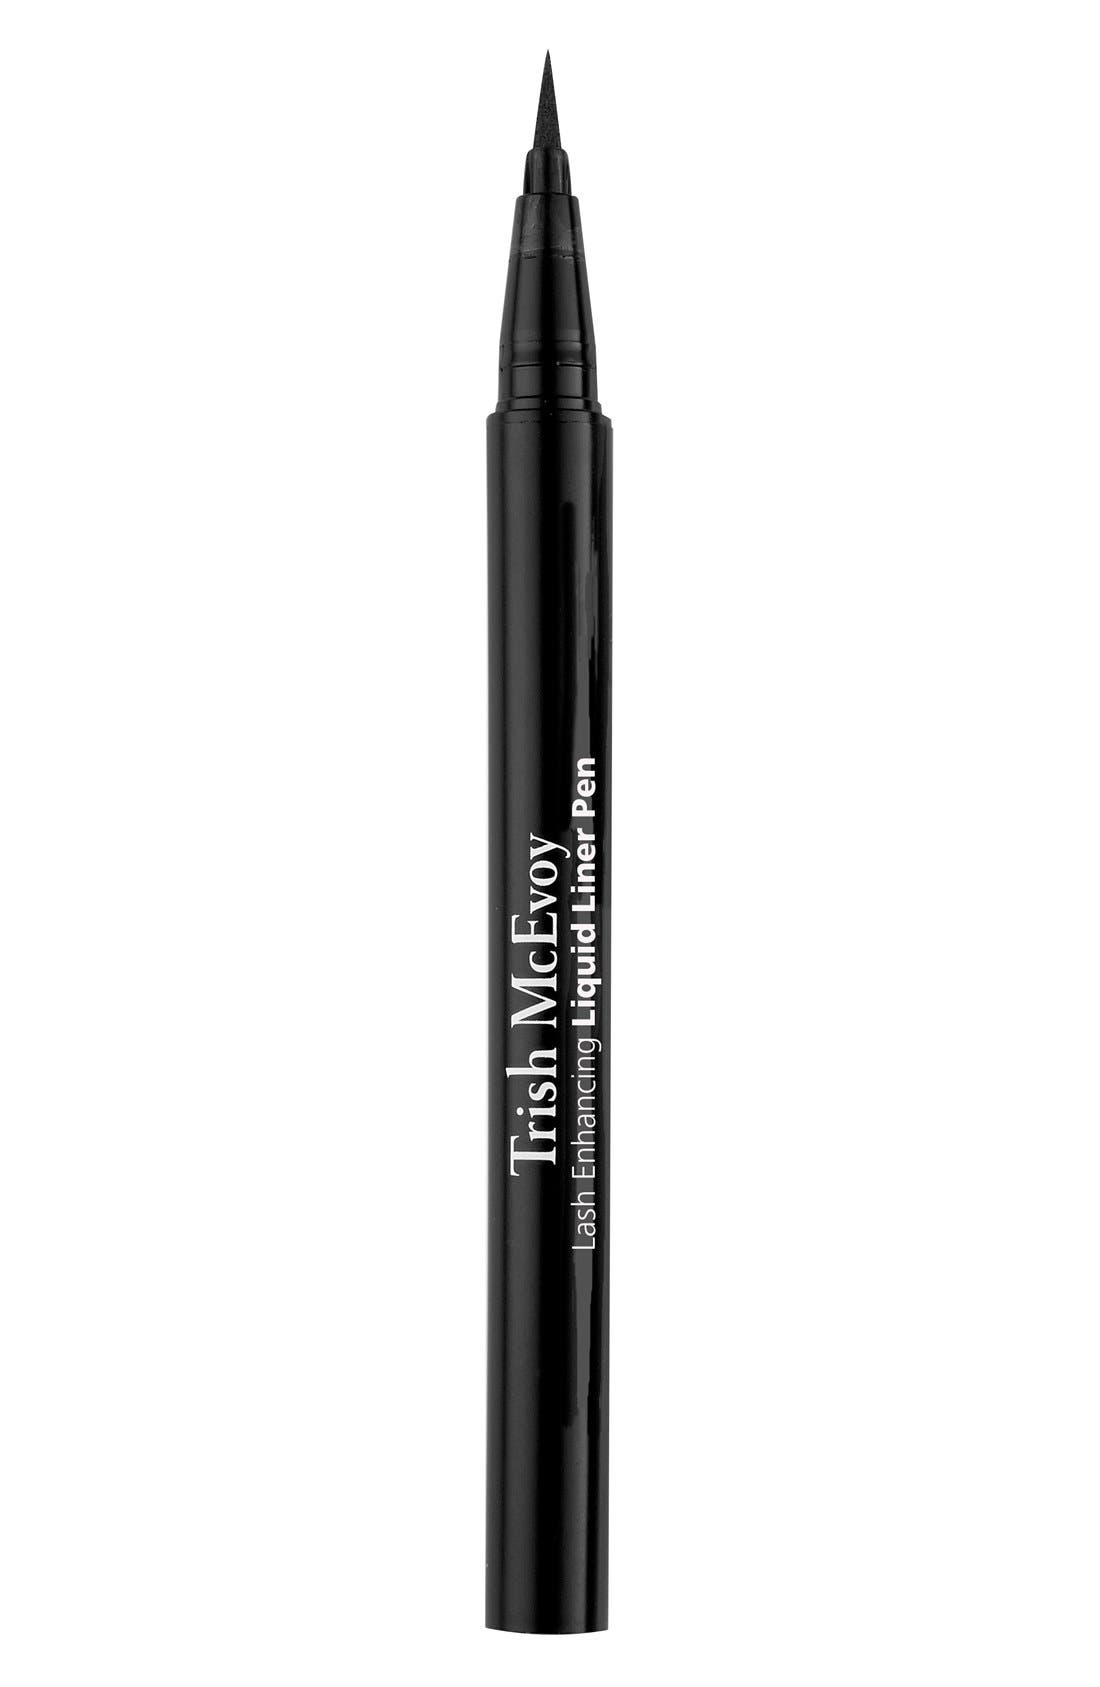 Lash Enhancing Liquid Liner Pen,                             Main thumbnail 1, color,                             INTENSE BLACK